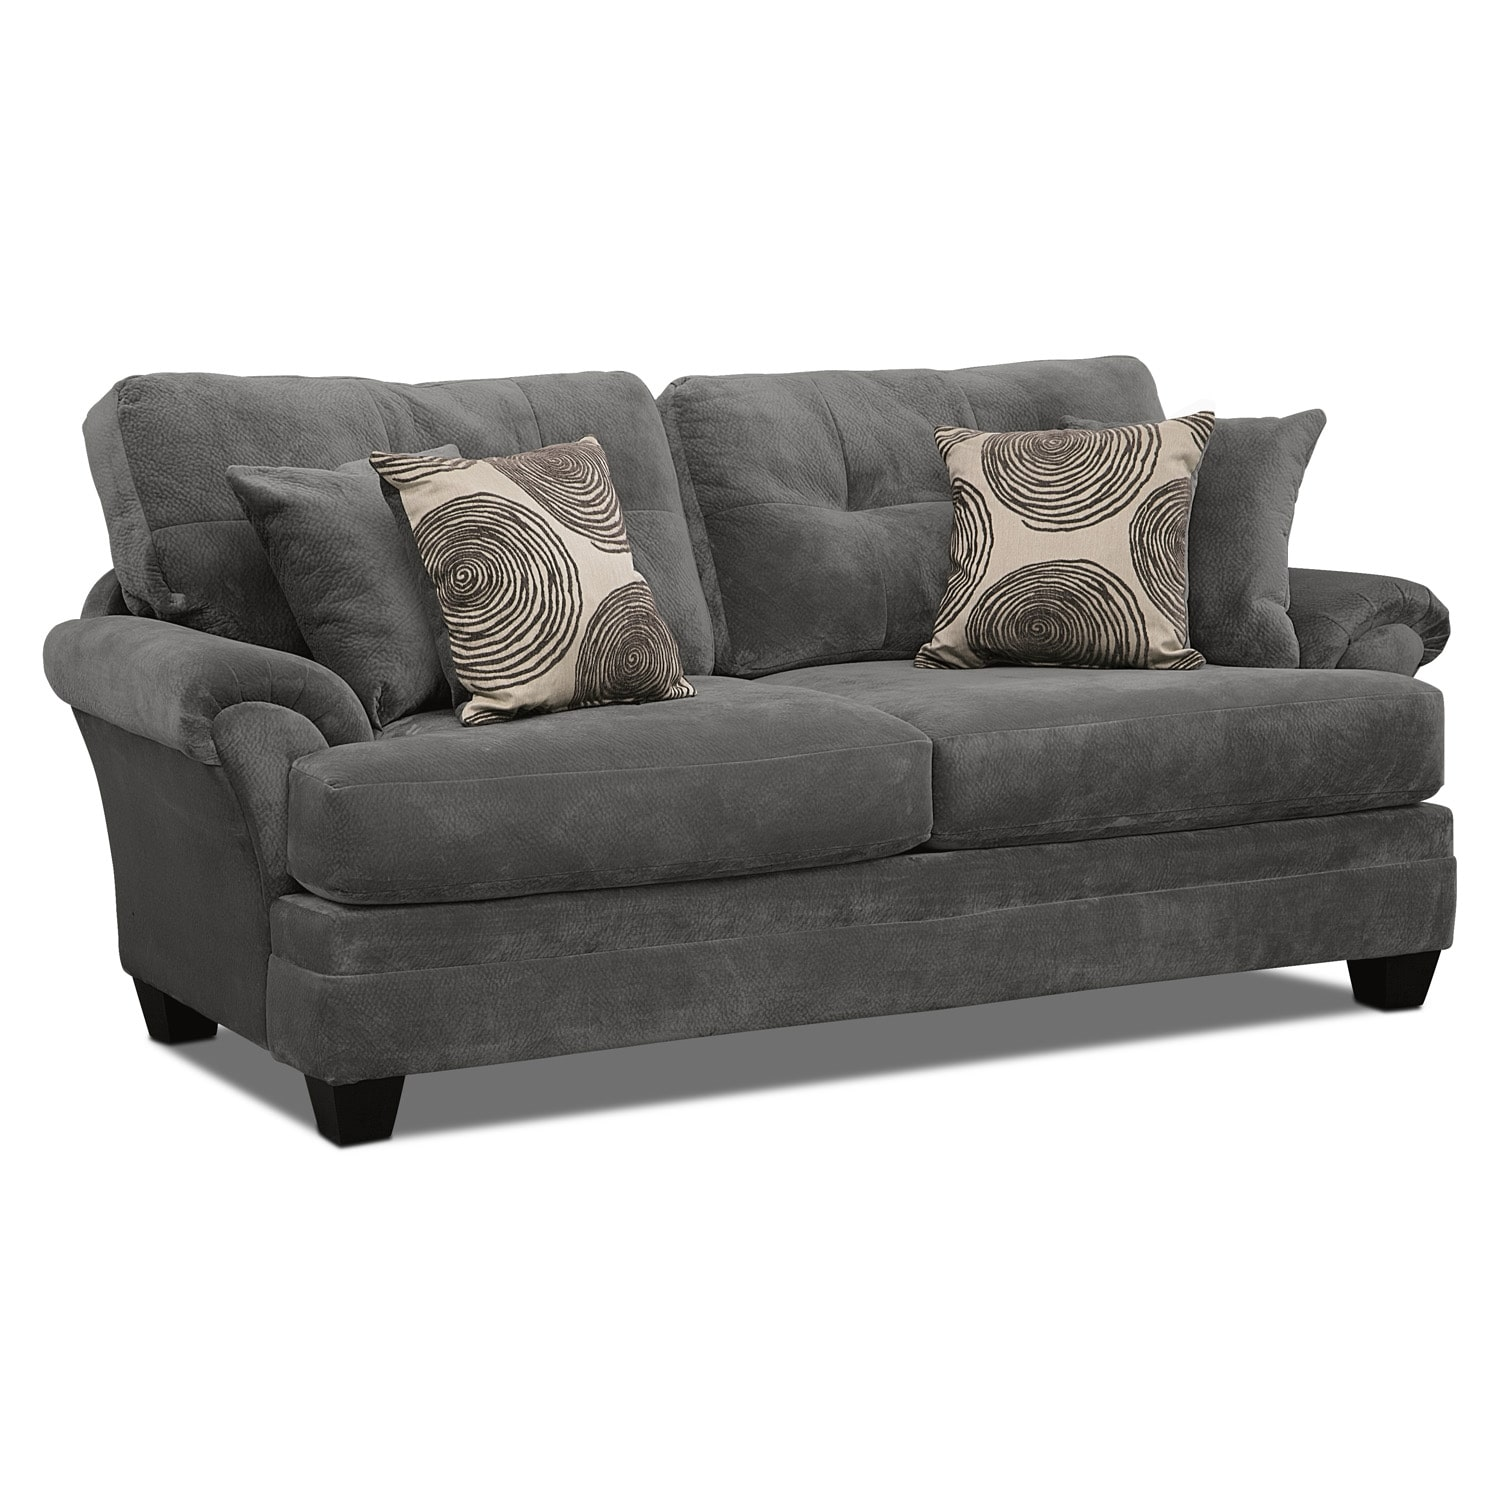 Cordelle Sofa - Gray